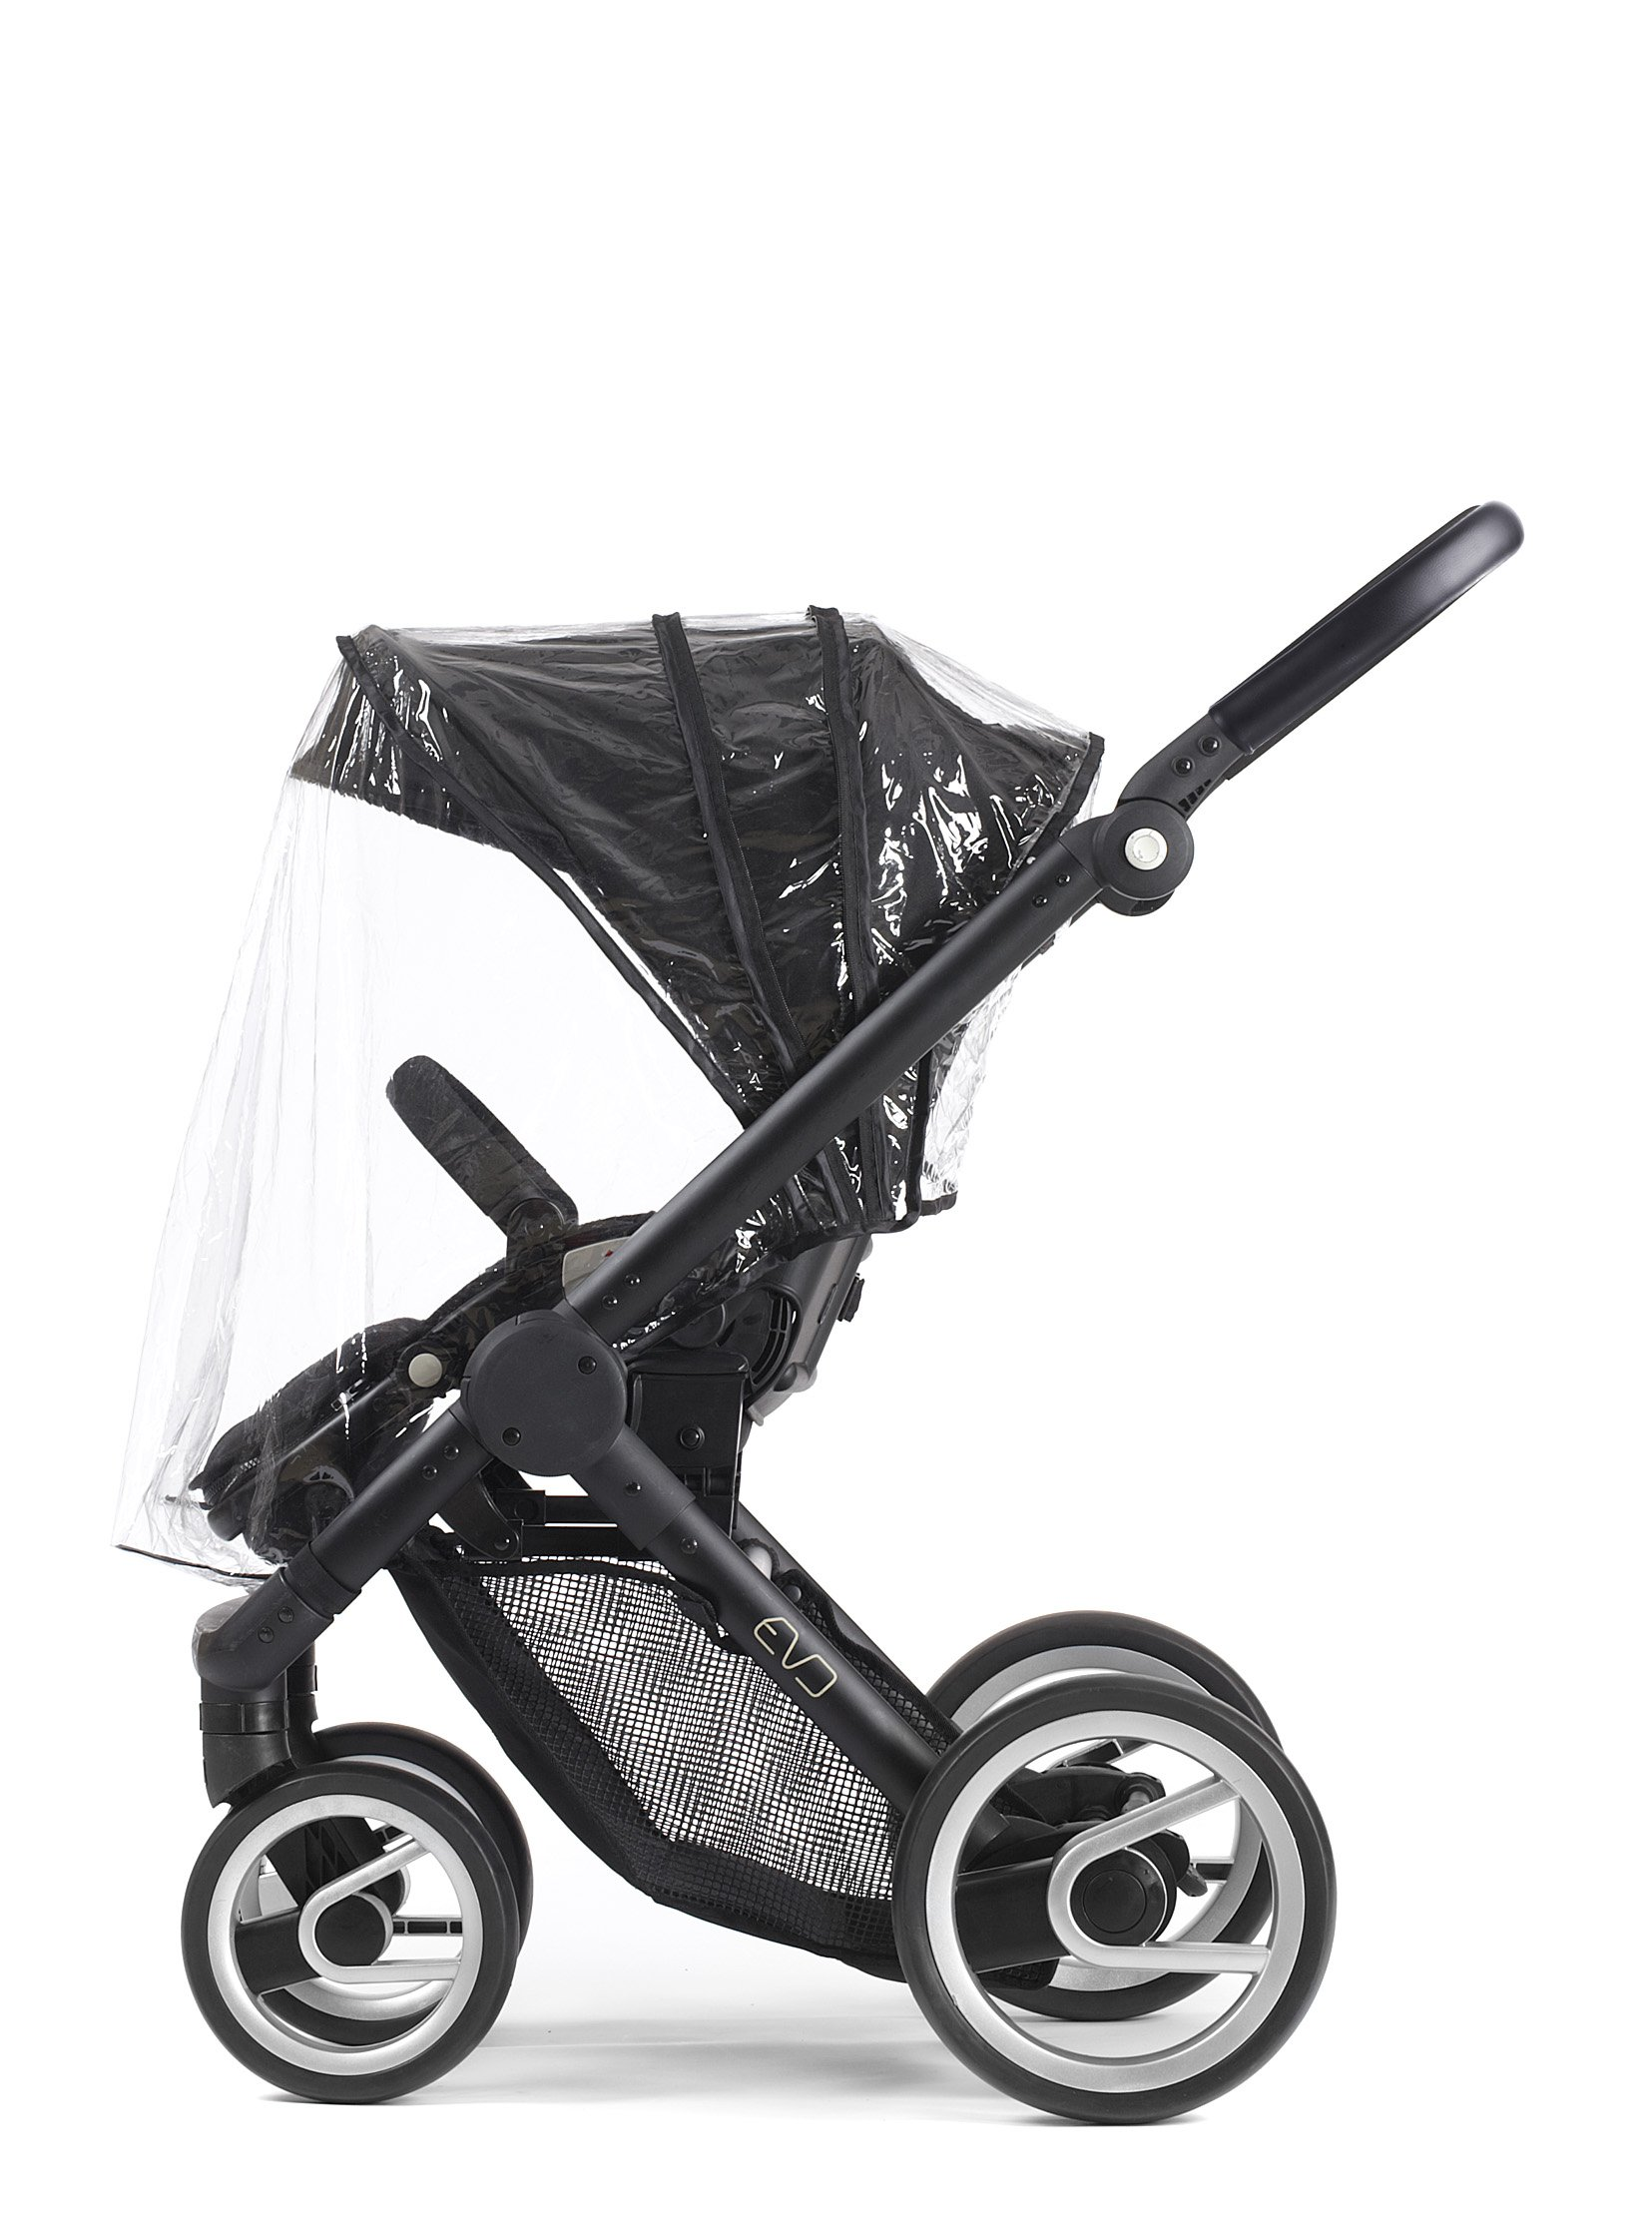 Mutsy Evo Stroller Raincover, Clear by Mutsy (Image #1)